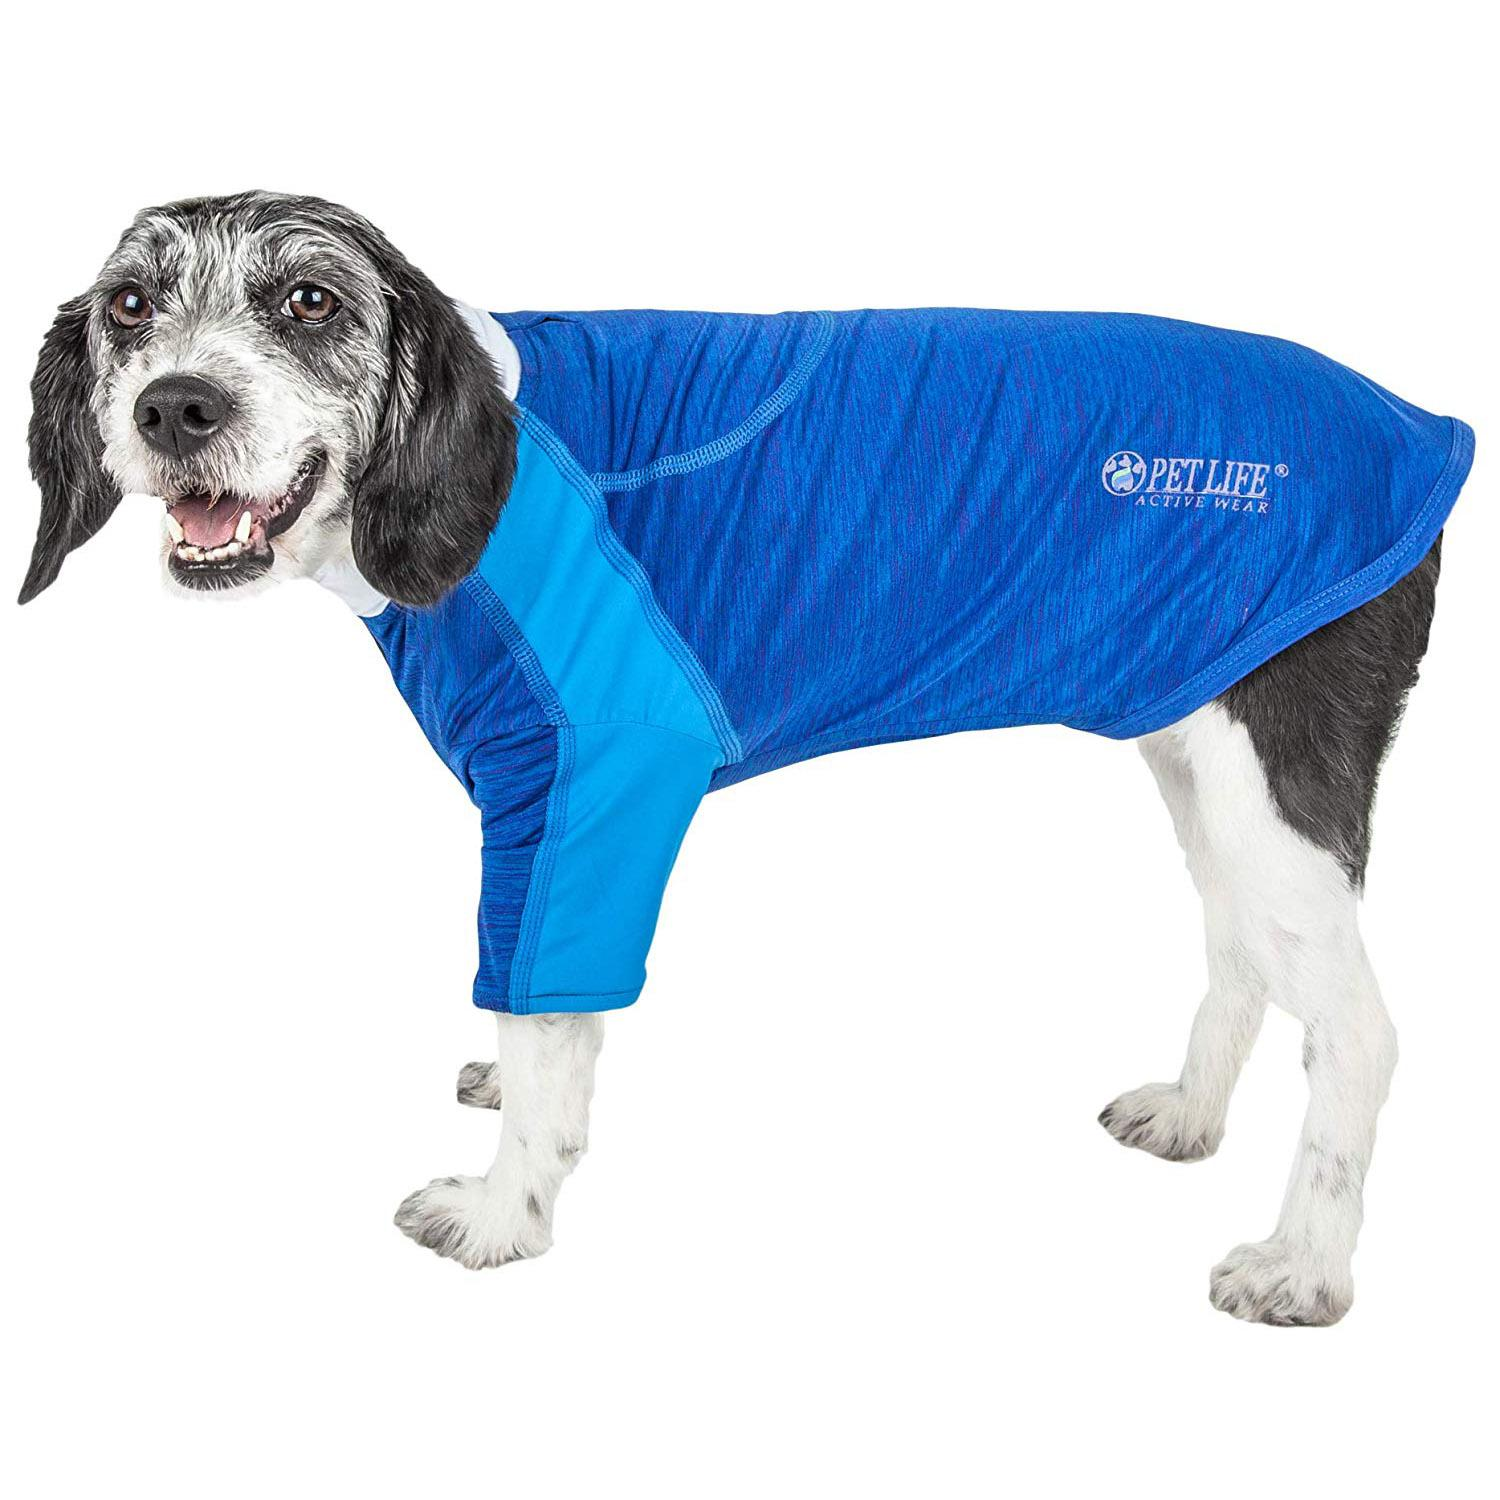 Pet Life ACTIVE 'Chewitt Wagassy' Performance Long Sleeve Dog T-Shirt - Blue